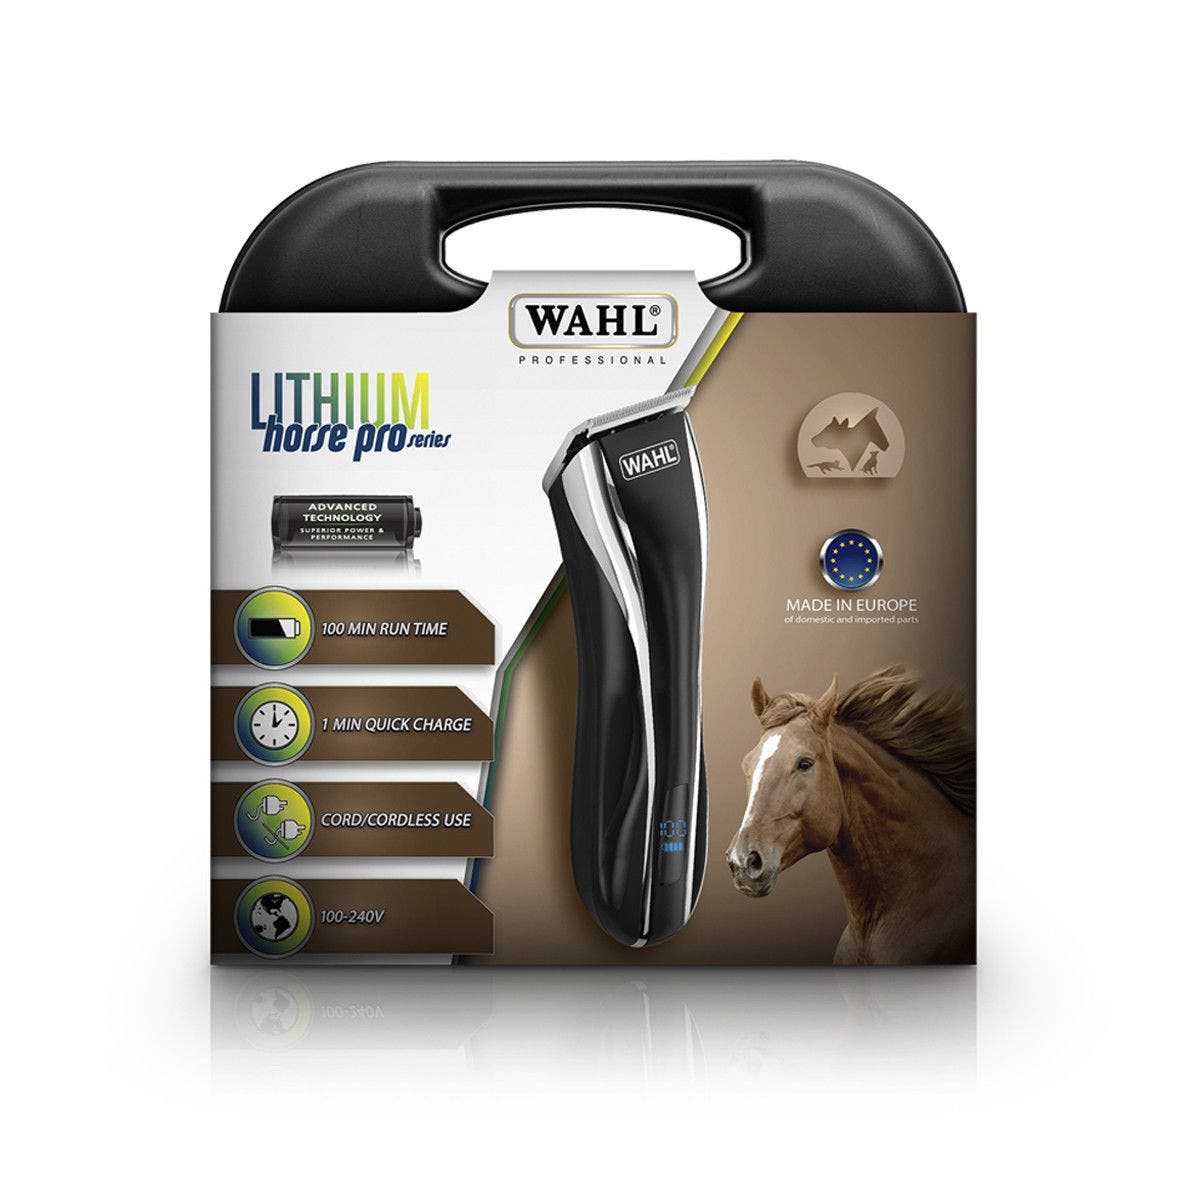 WAHL Lithium HORSE Pro Series Animal Grooming Clipper Cord/Cordless 1911-H